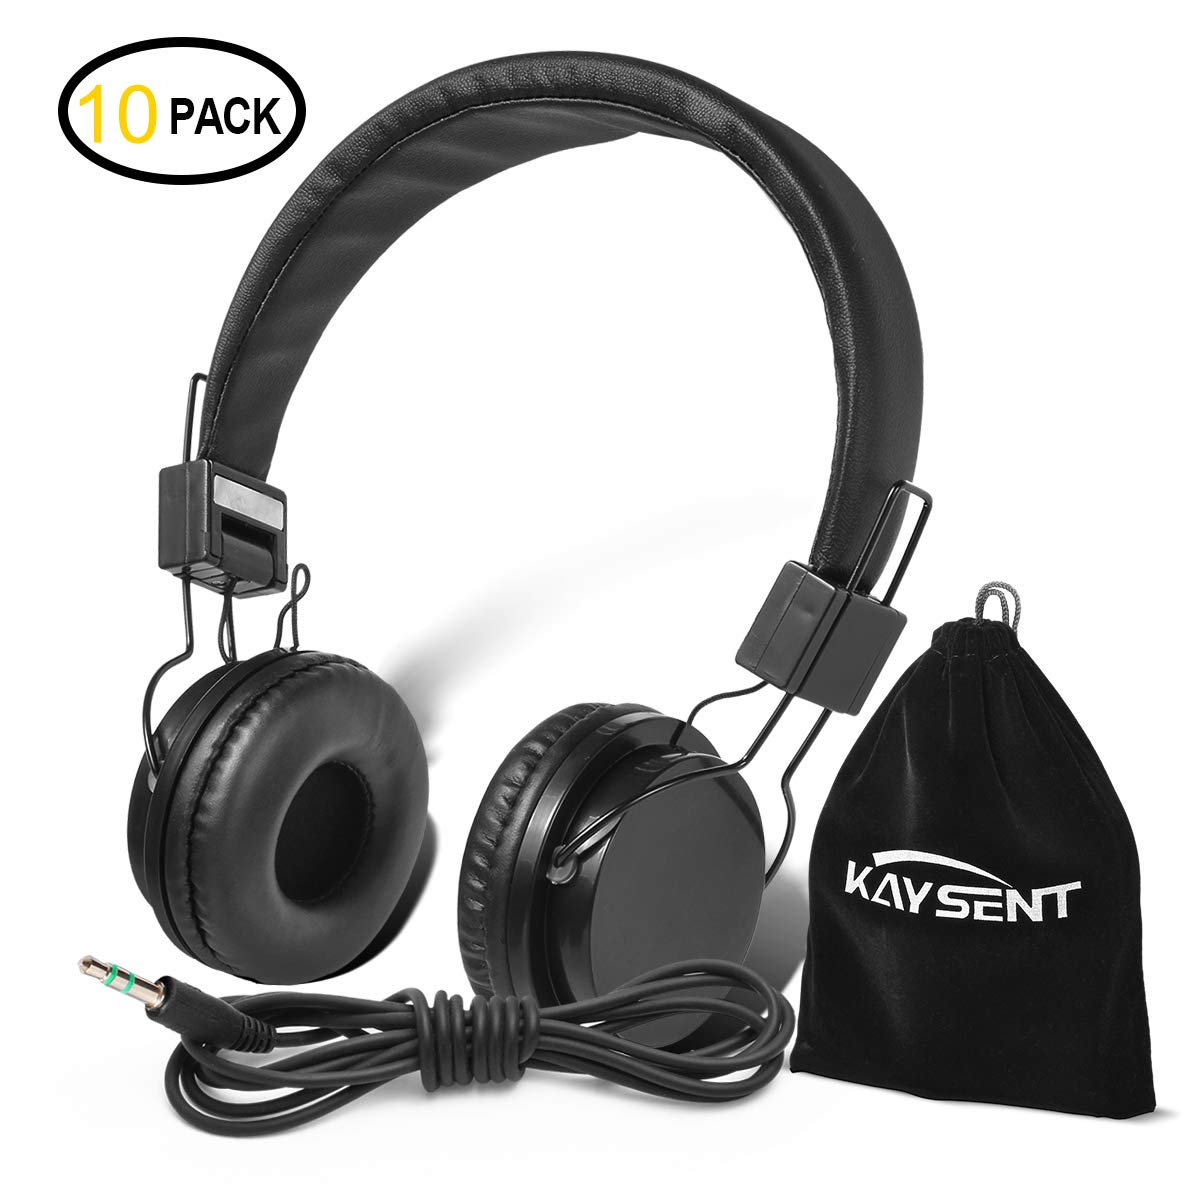 Kaysent Heavy Duty Headphones Set for Students - (KHPB-10B) 10 Packs Classroom Kids' Headphones for School, Library, Computers, Children and Adult(No Microphone)